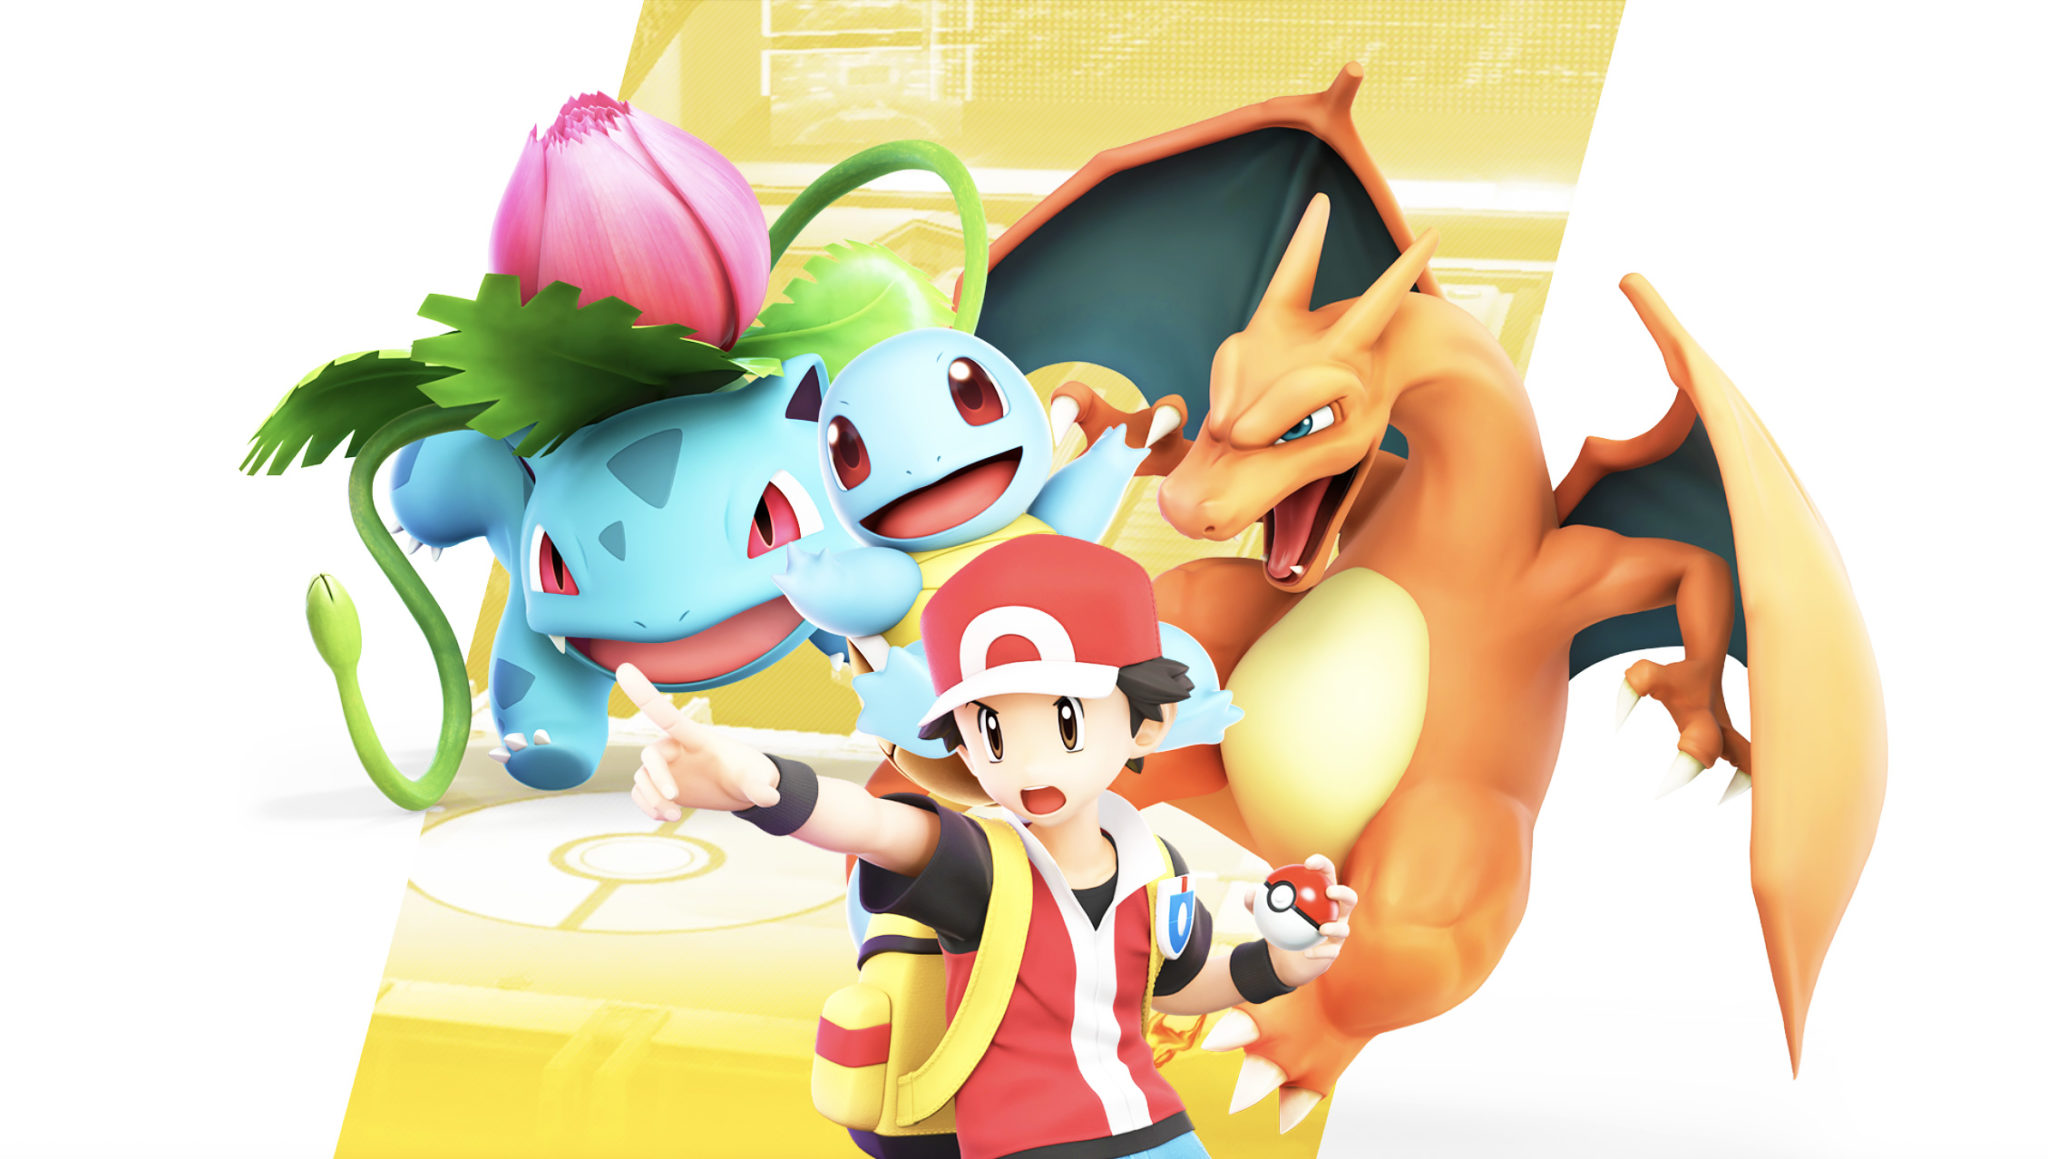 Pokemon trainer in smash